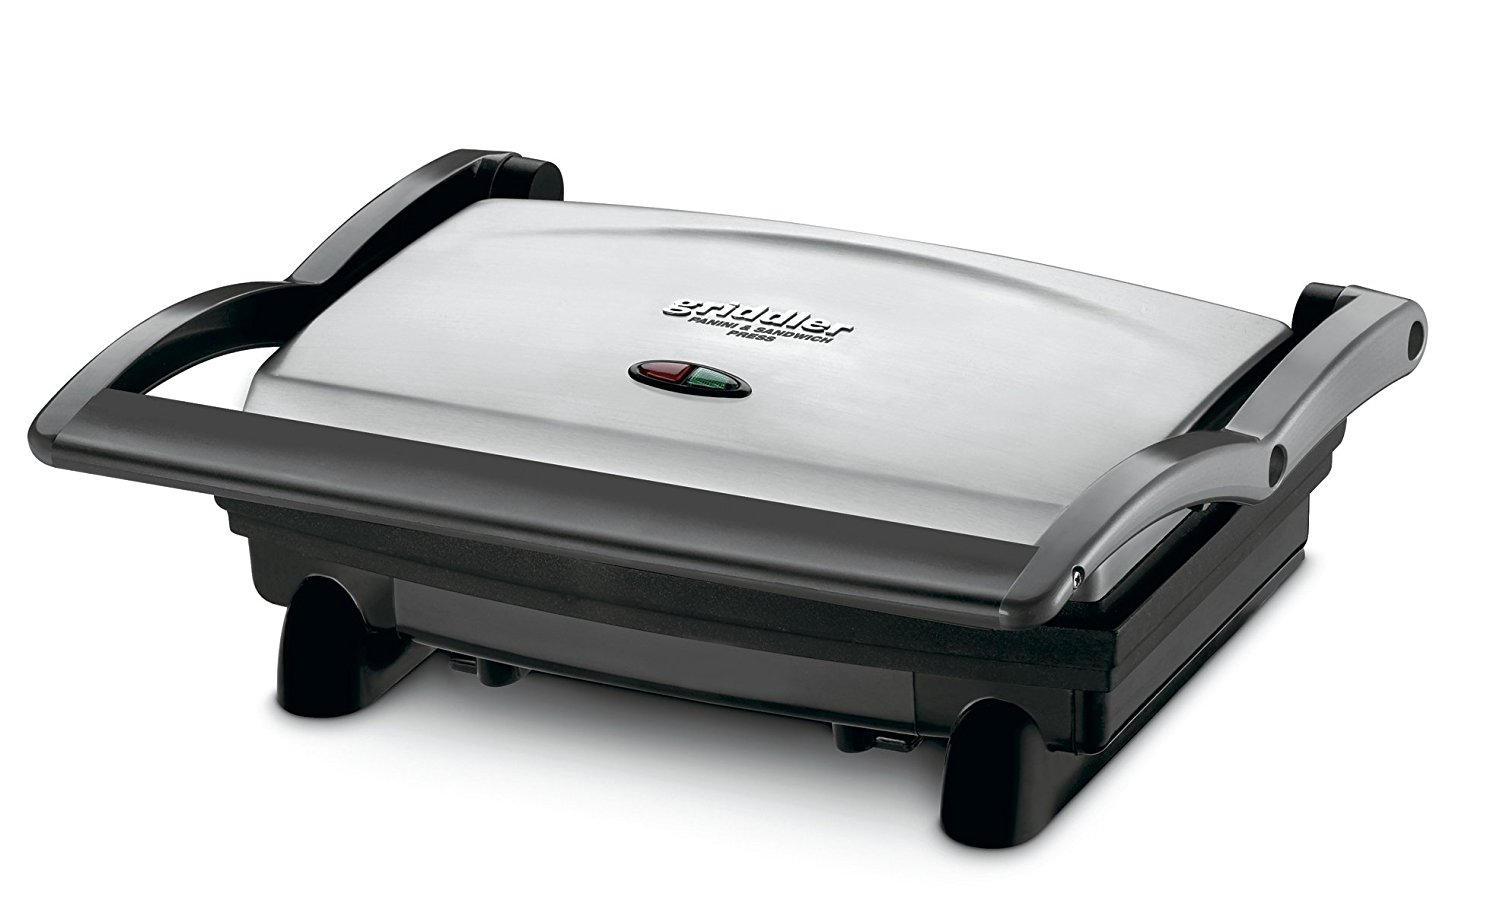 Cuisinart Sandwich Maker Lp Gas Supplies